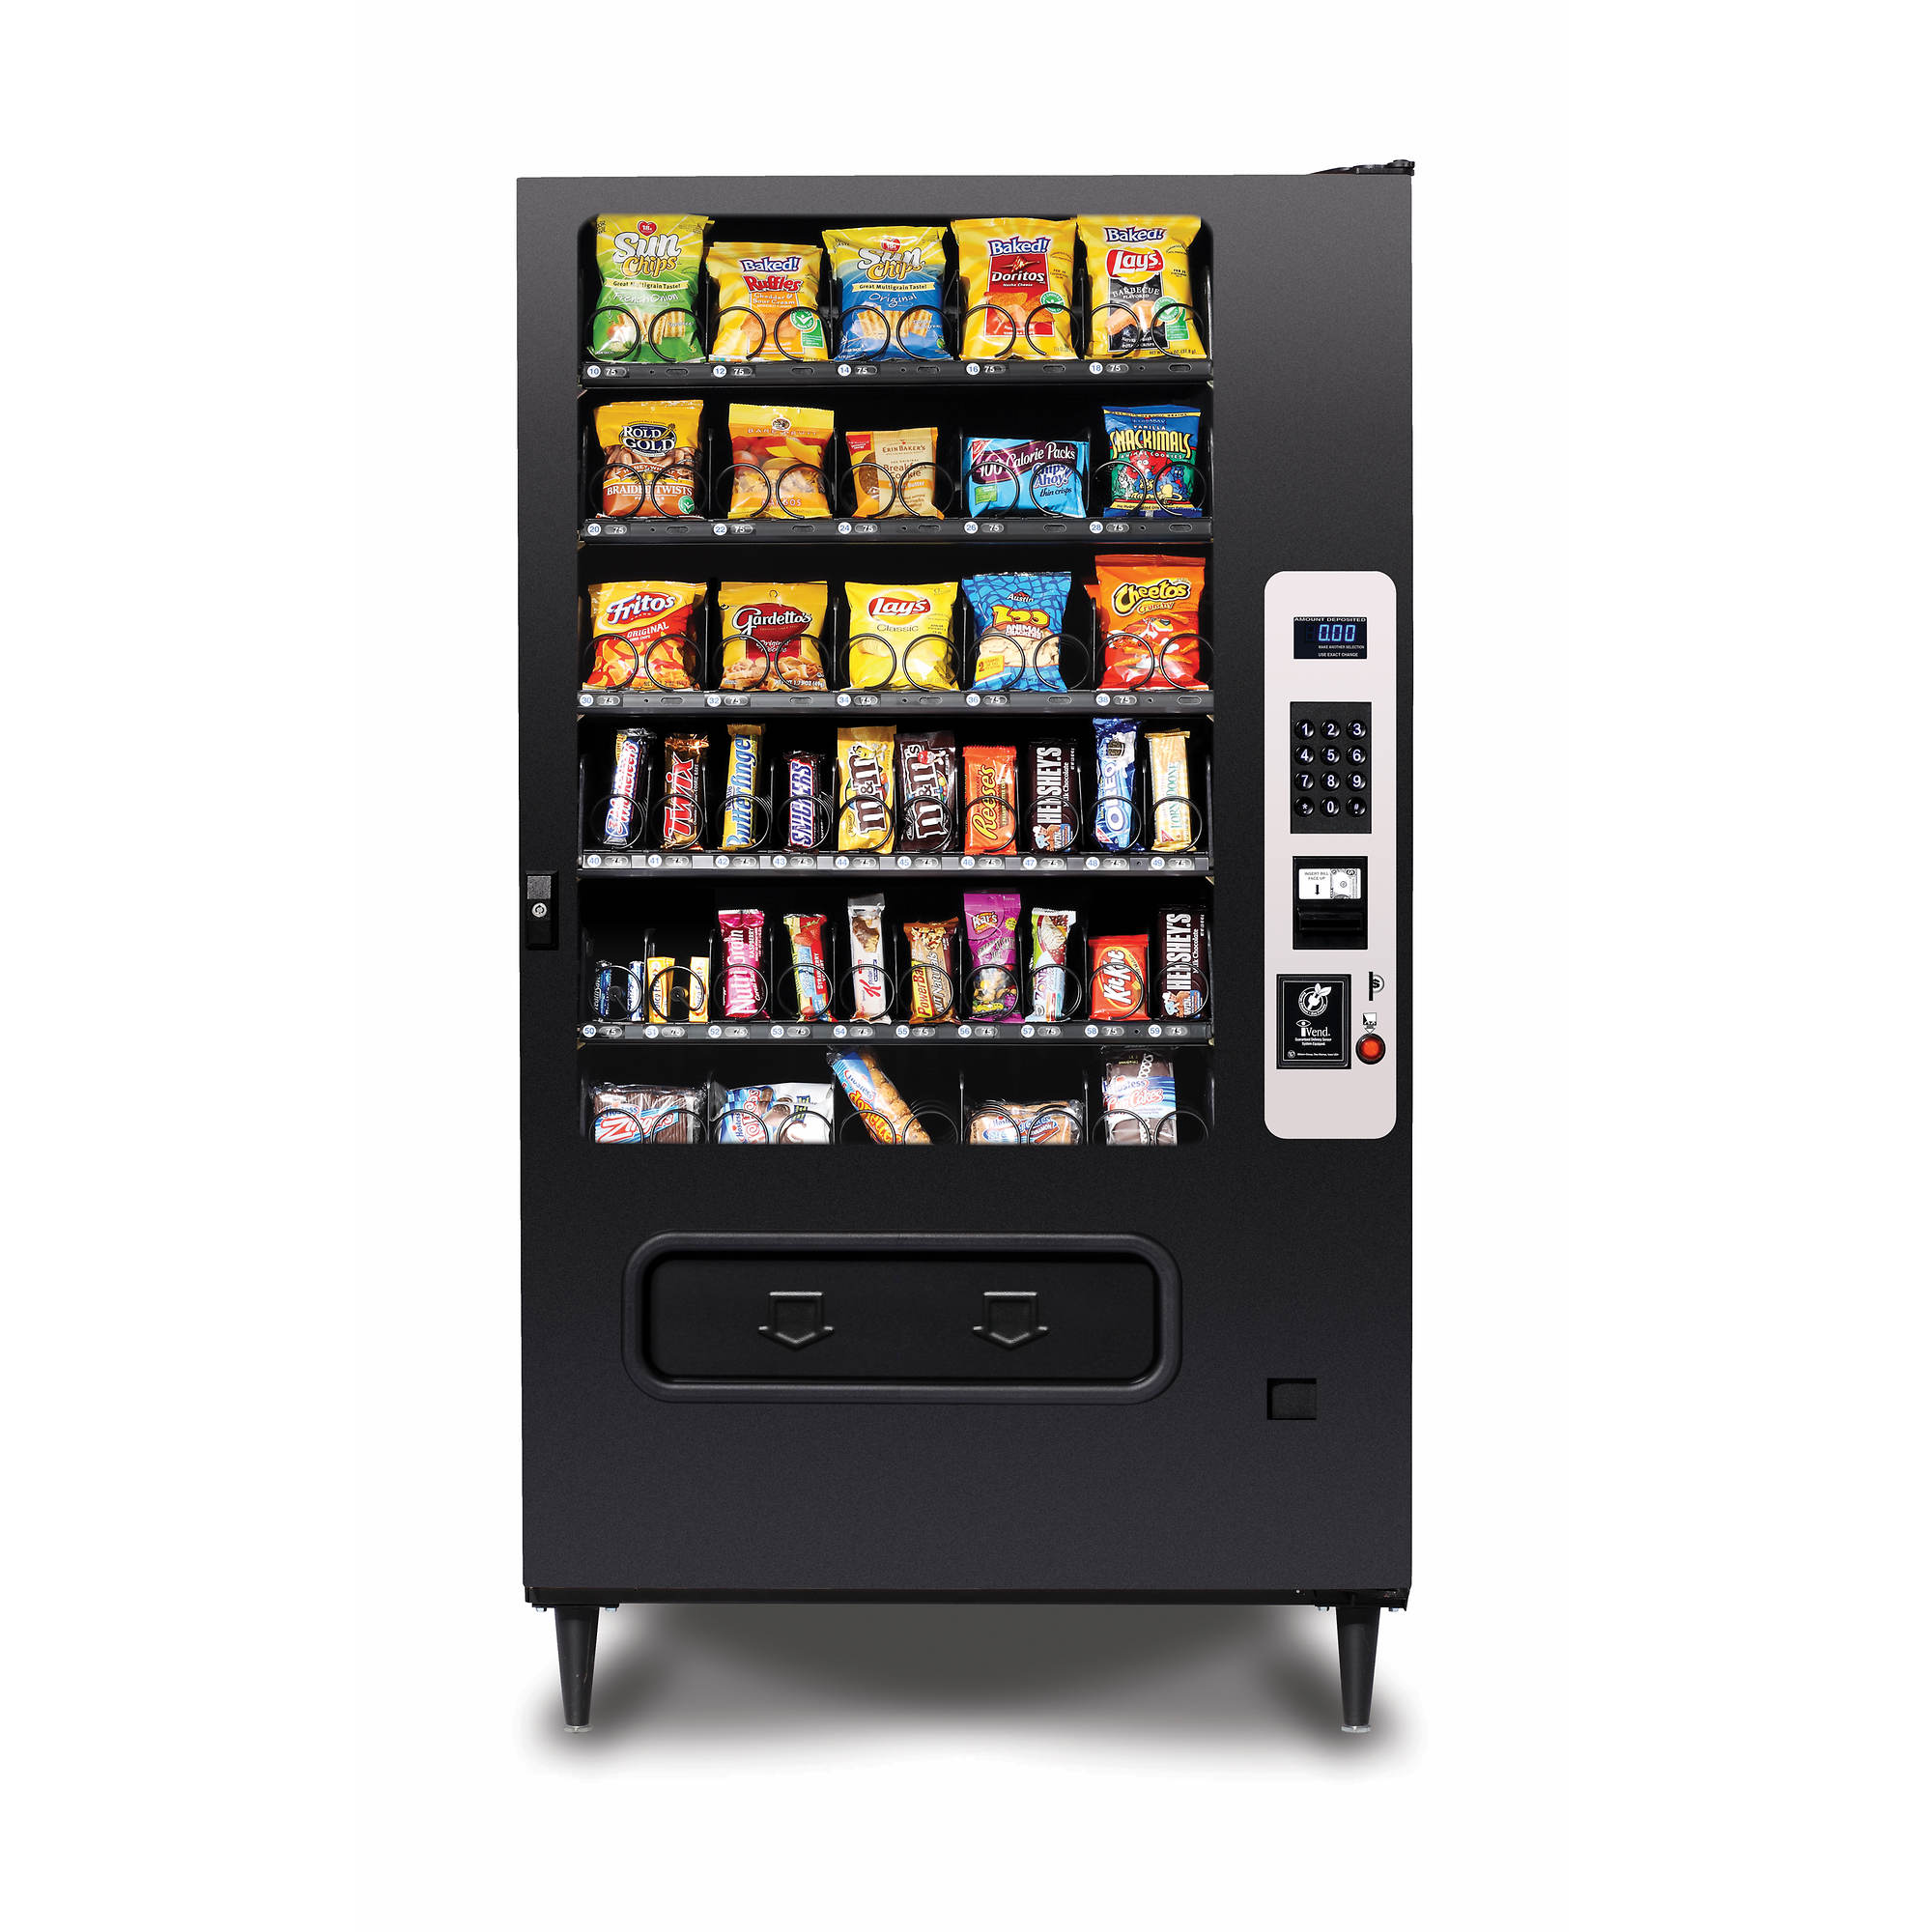 Hair accessories vending machines - Selectivend Sv5 Snack Vending Machine